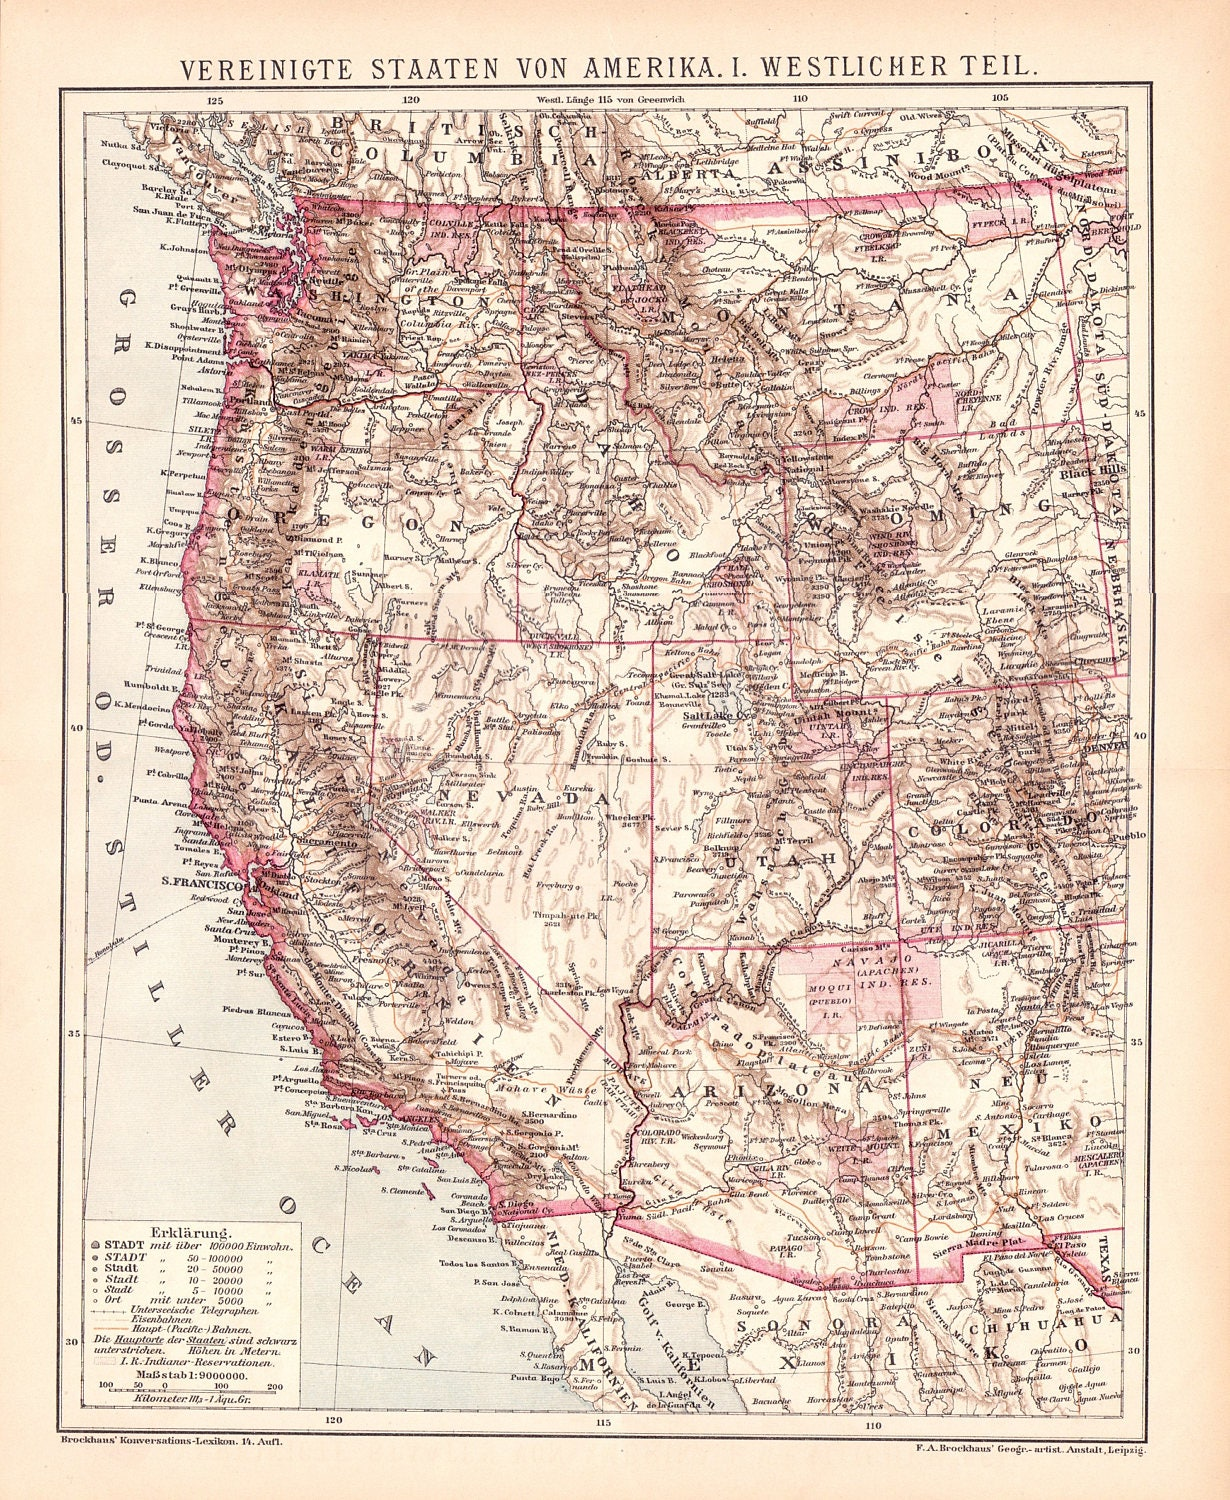 Antique West Coast of America Map from 1890 United States